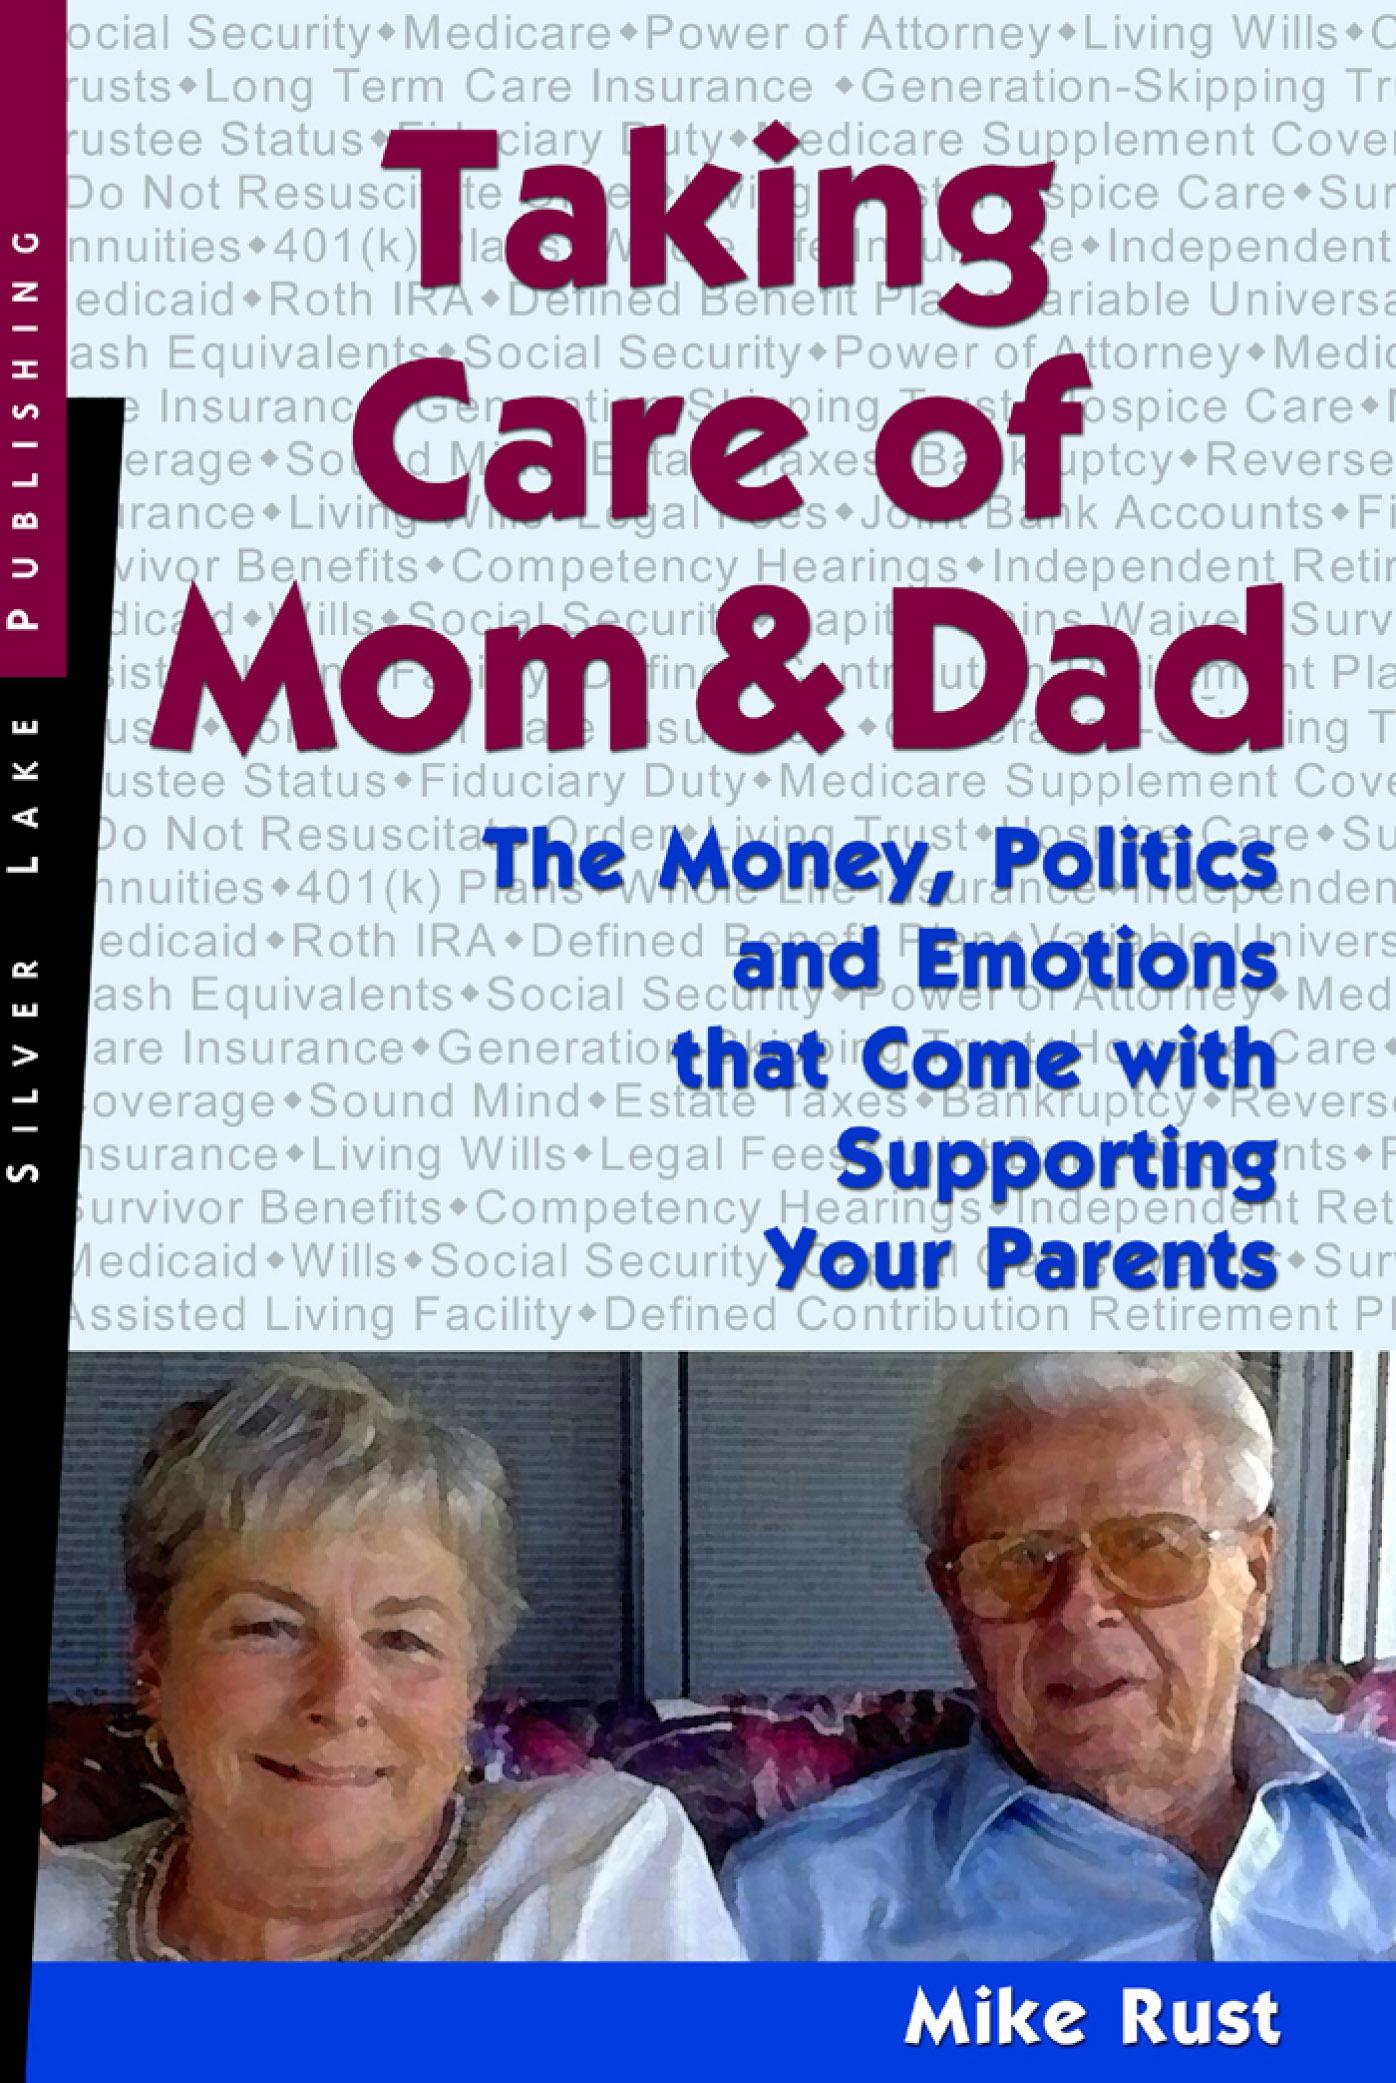 Taking Care of Mom and Dad: The Money Issues, Politics and Emotions That Come with Supporting Your Parents EB9781563438165